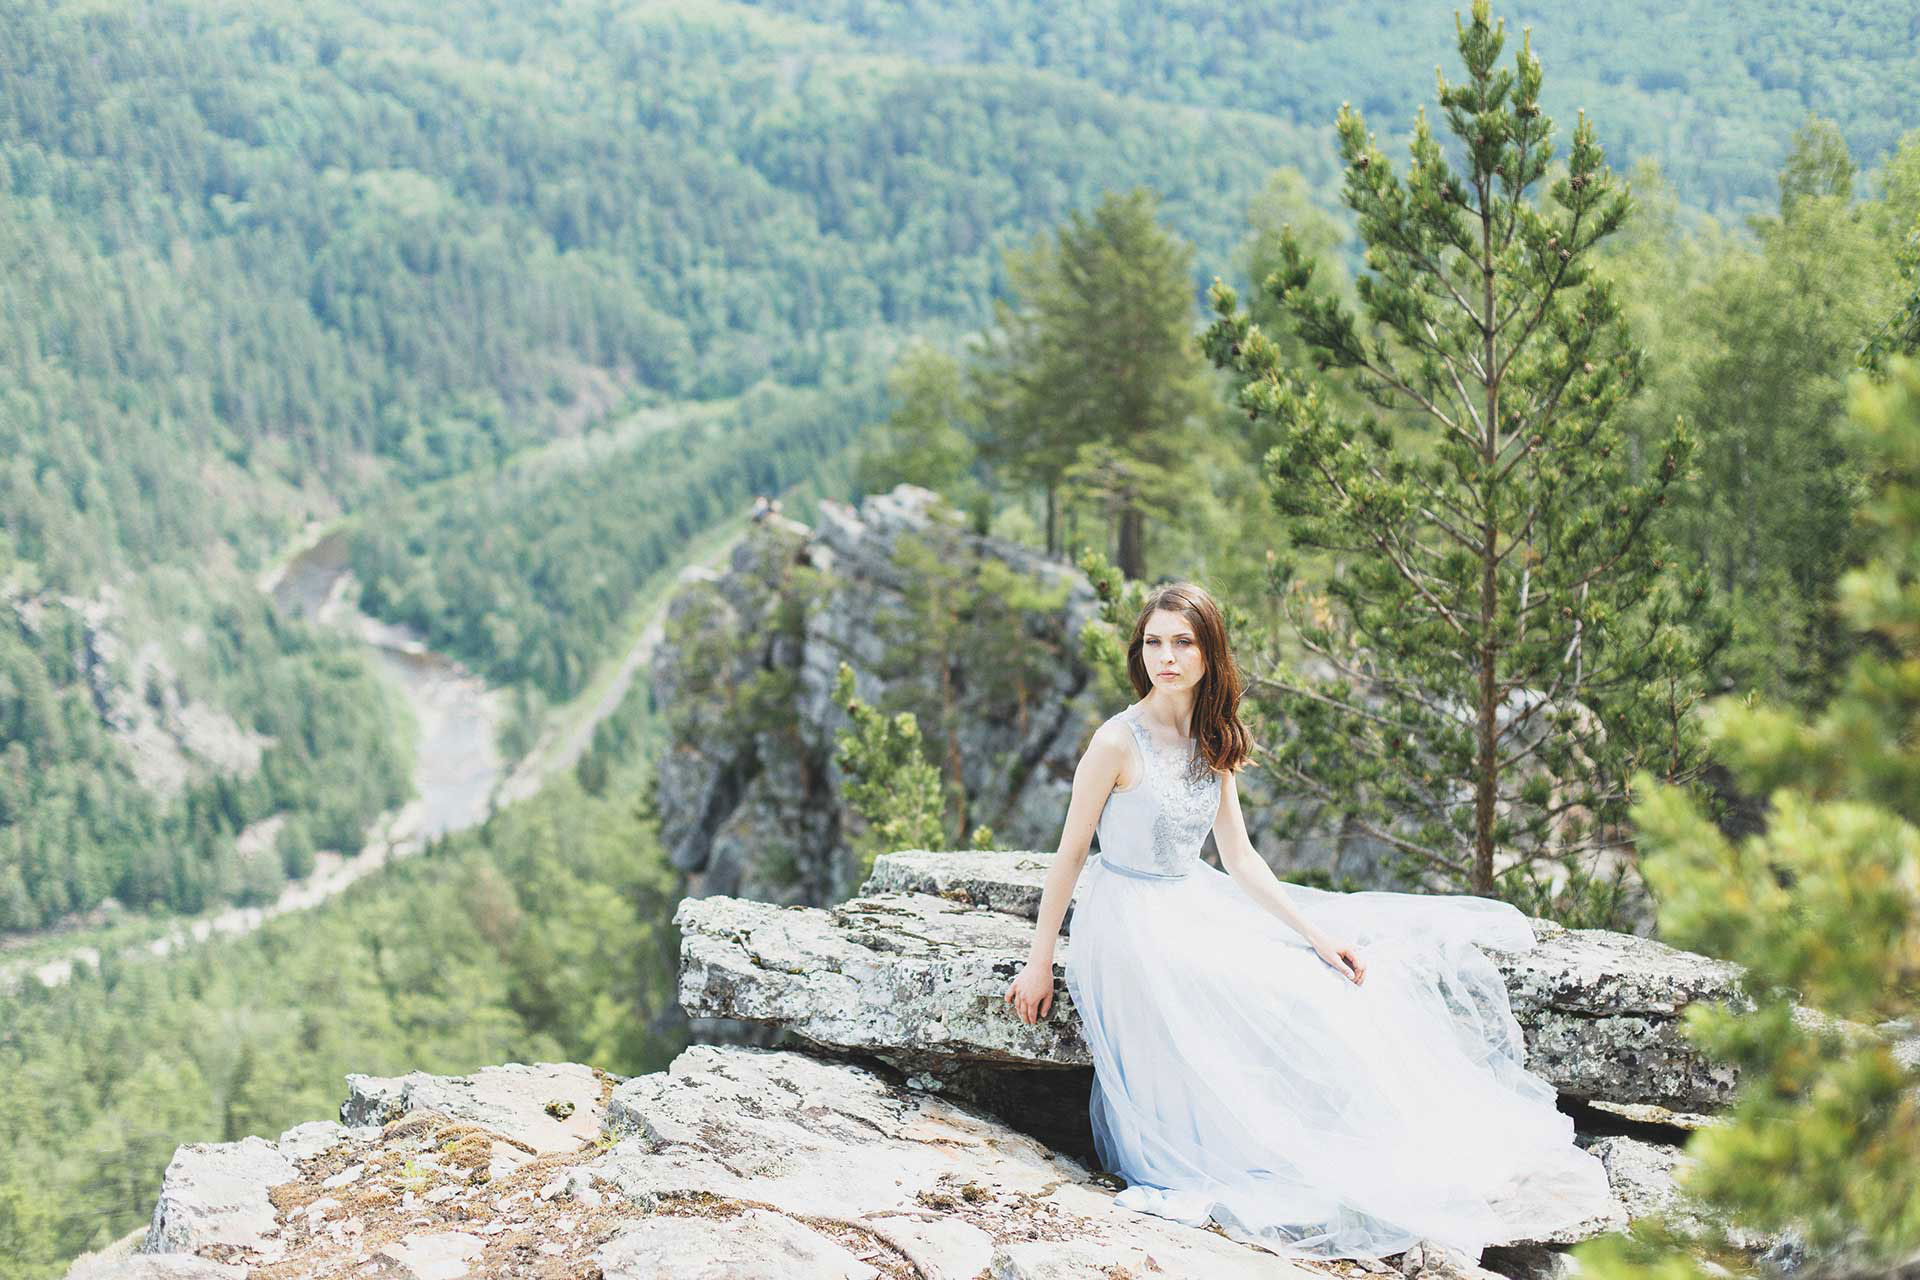 Photo-shoot-in-the-mountains-blue-wedding-dress-with-embroidery